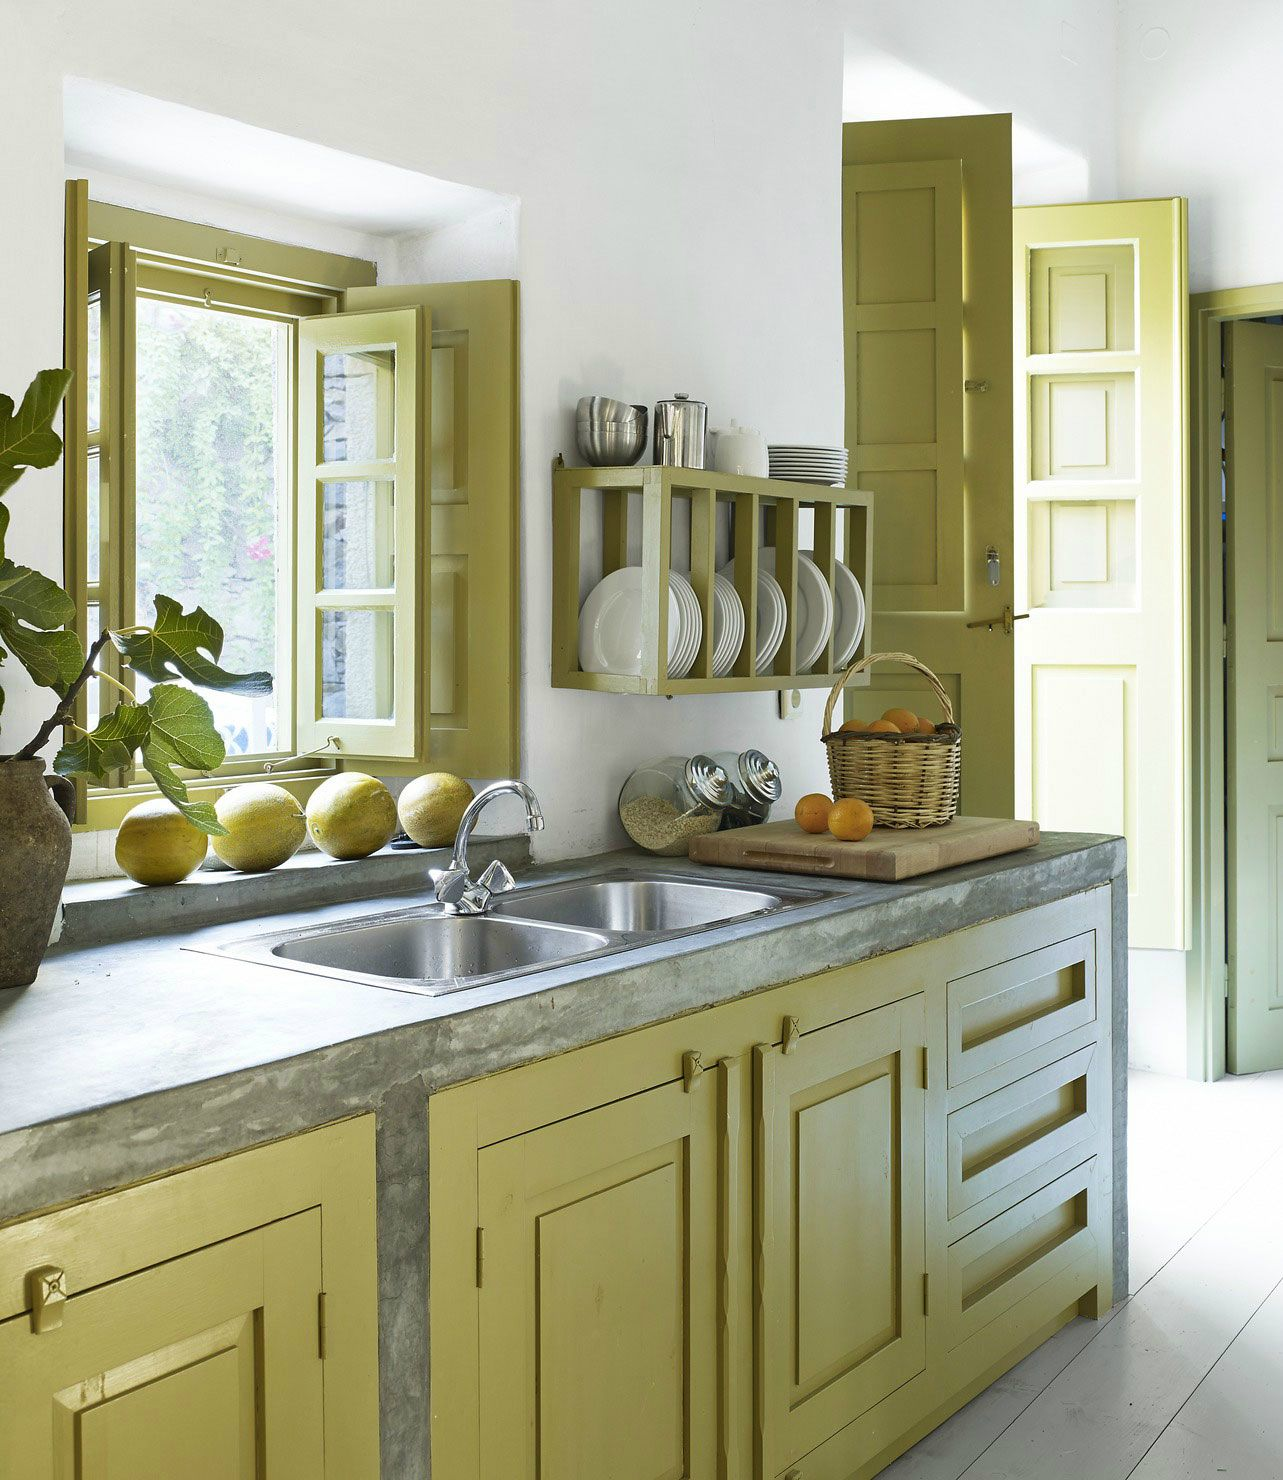 Elle decor predicts the color trends for 2017 yellow kitchen interior elle decor and kitchens - Small kitchen interior design ...